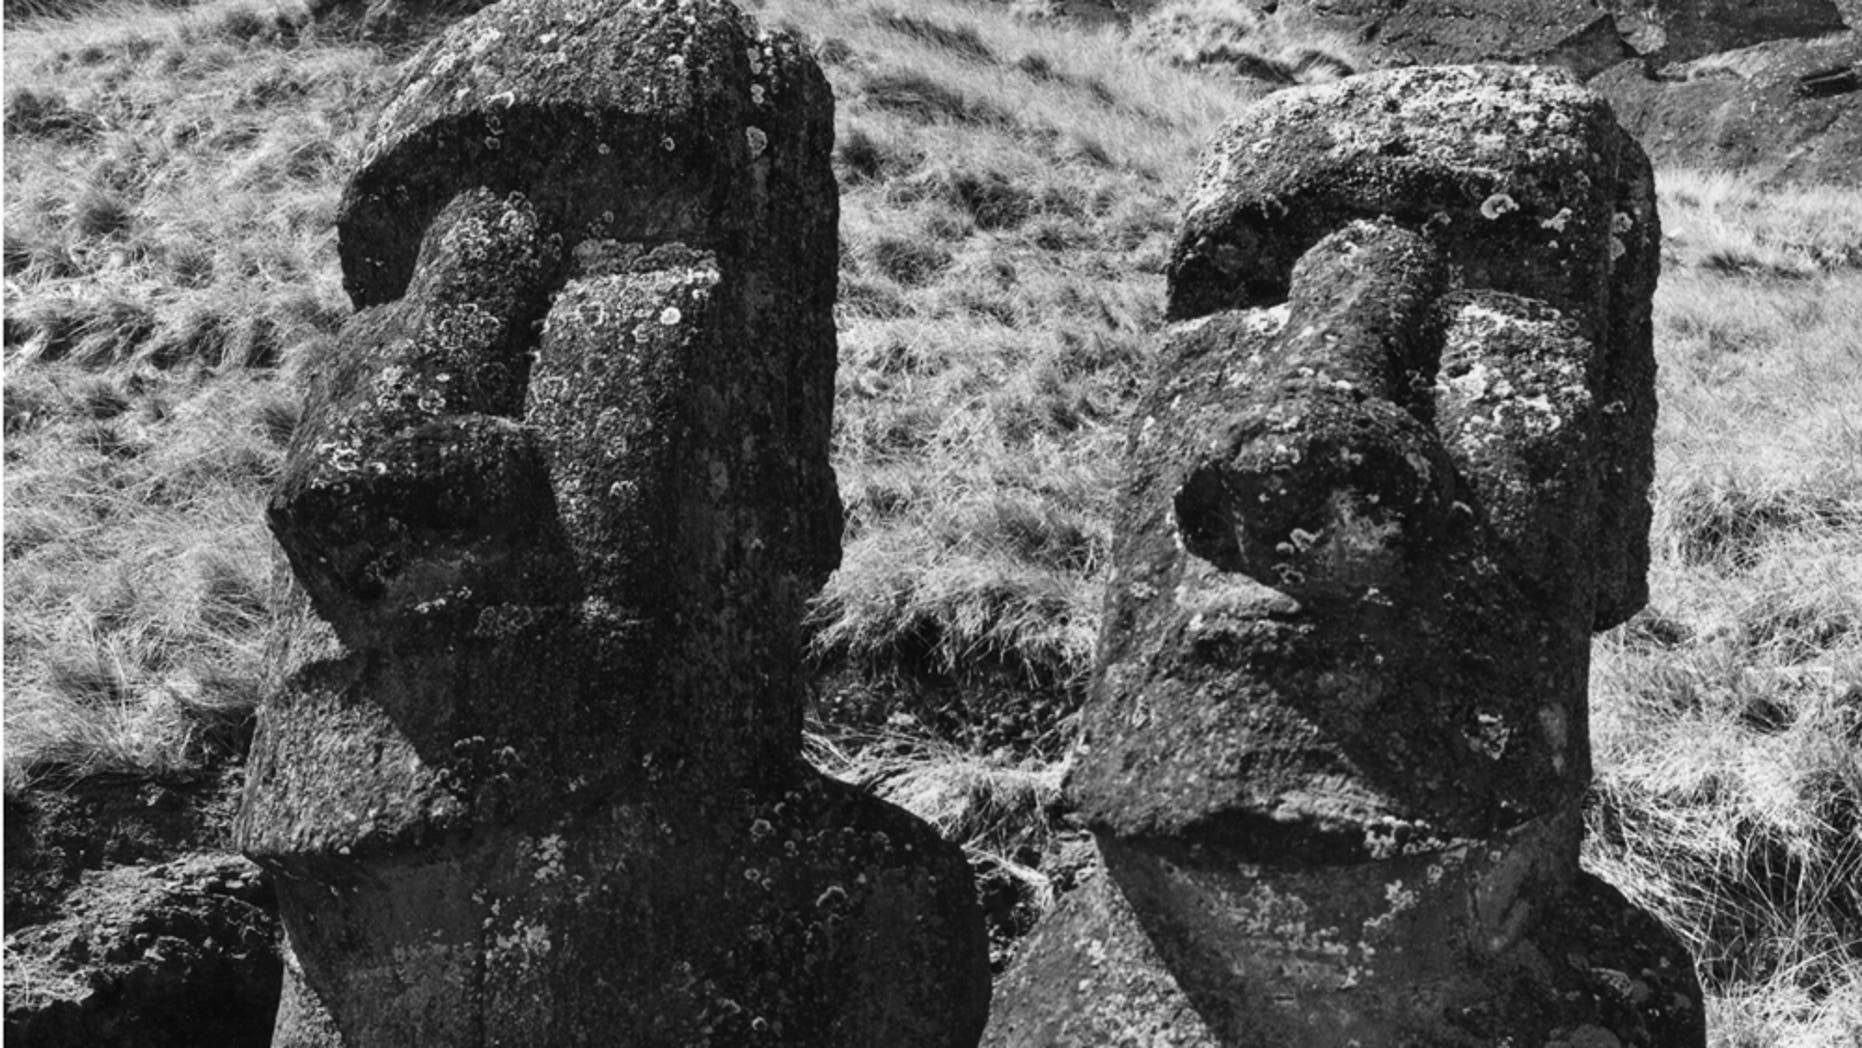 circa 1955:  Two ancient statues of uncertain origin on Easter Island, in the South Pacific Ocean.  (Photo by Richard Harrington/Three Lions/Getty Images)